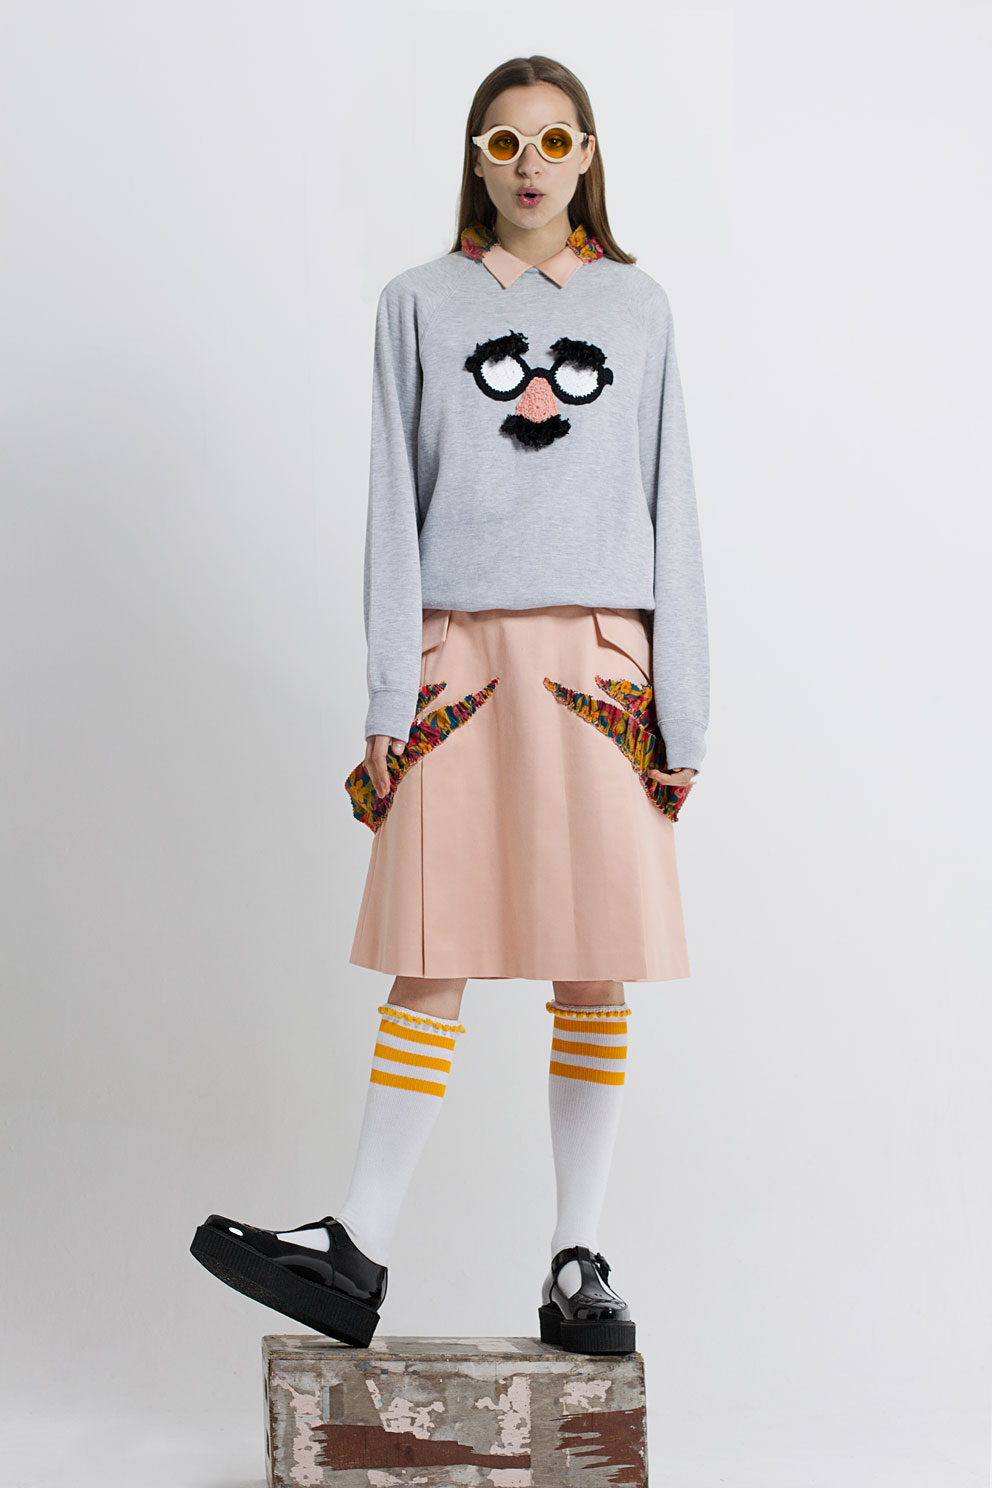 Pastel collar shirt by Gyoyuni Kimchoe, grey sweatshirt by Cat Brothers, pastel side ruffles skirt by Gyoyuni Kimchoe, shoes by Underground England, white tube socks by Cat Brothers, wooden frame yellow glasses by Termite Eyewear